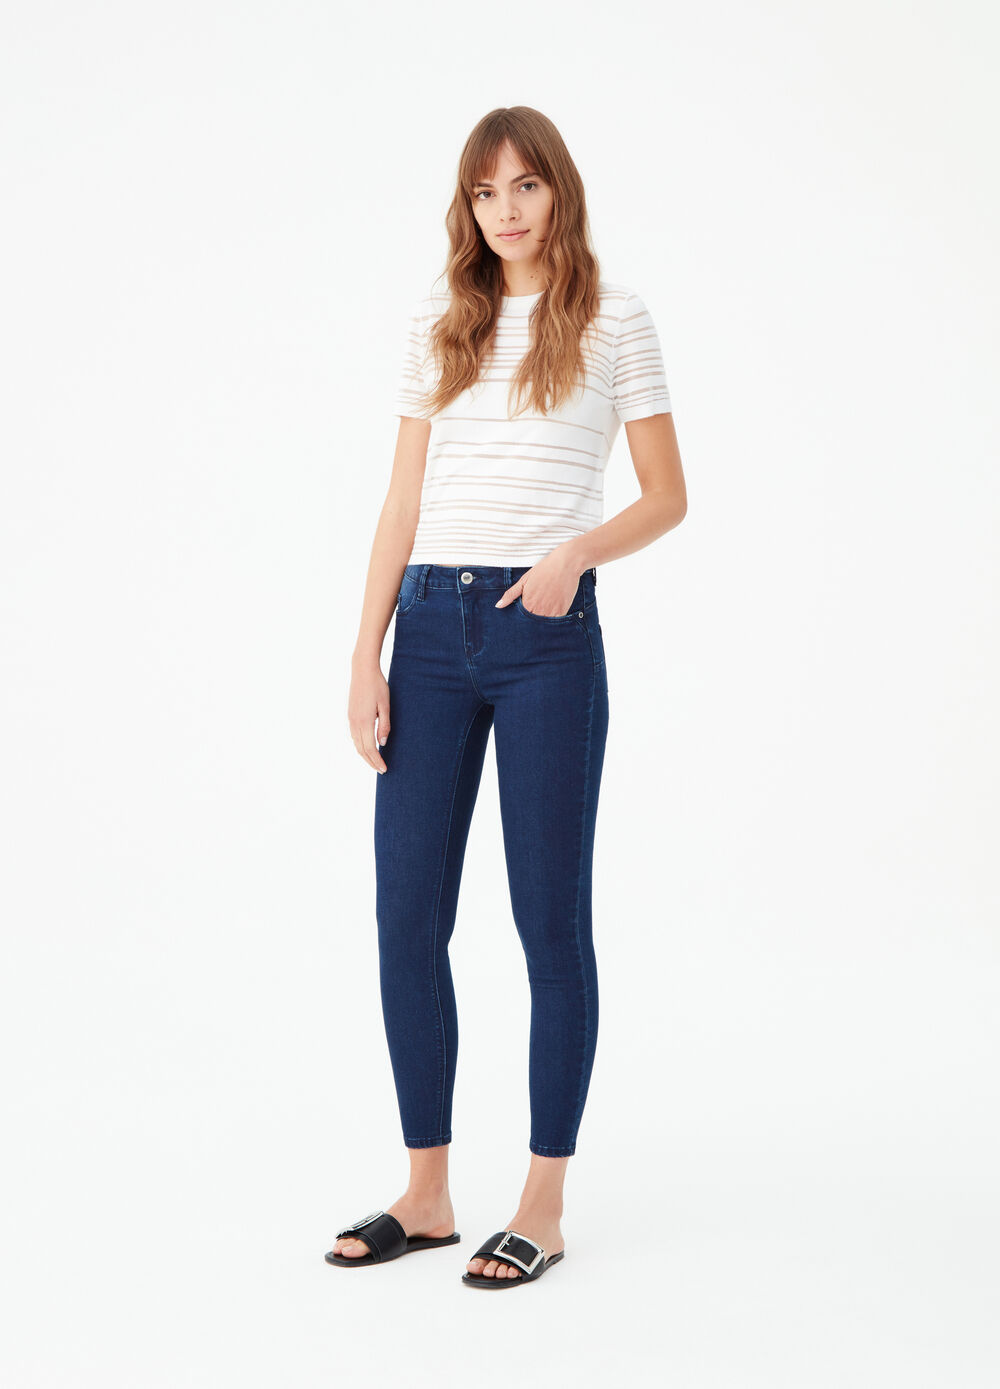 Body-shaping push-up jeans